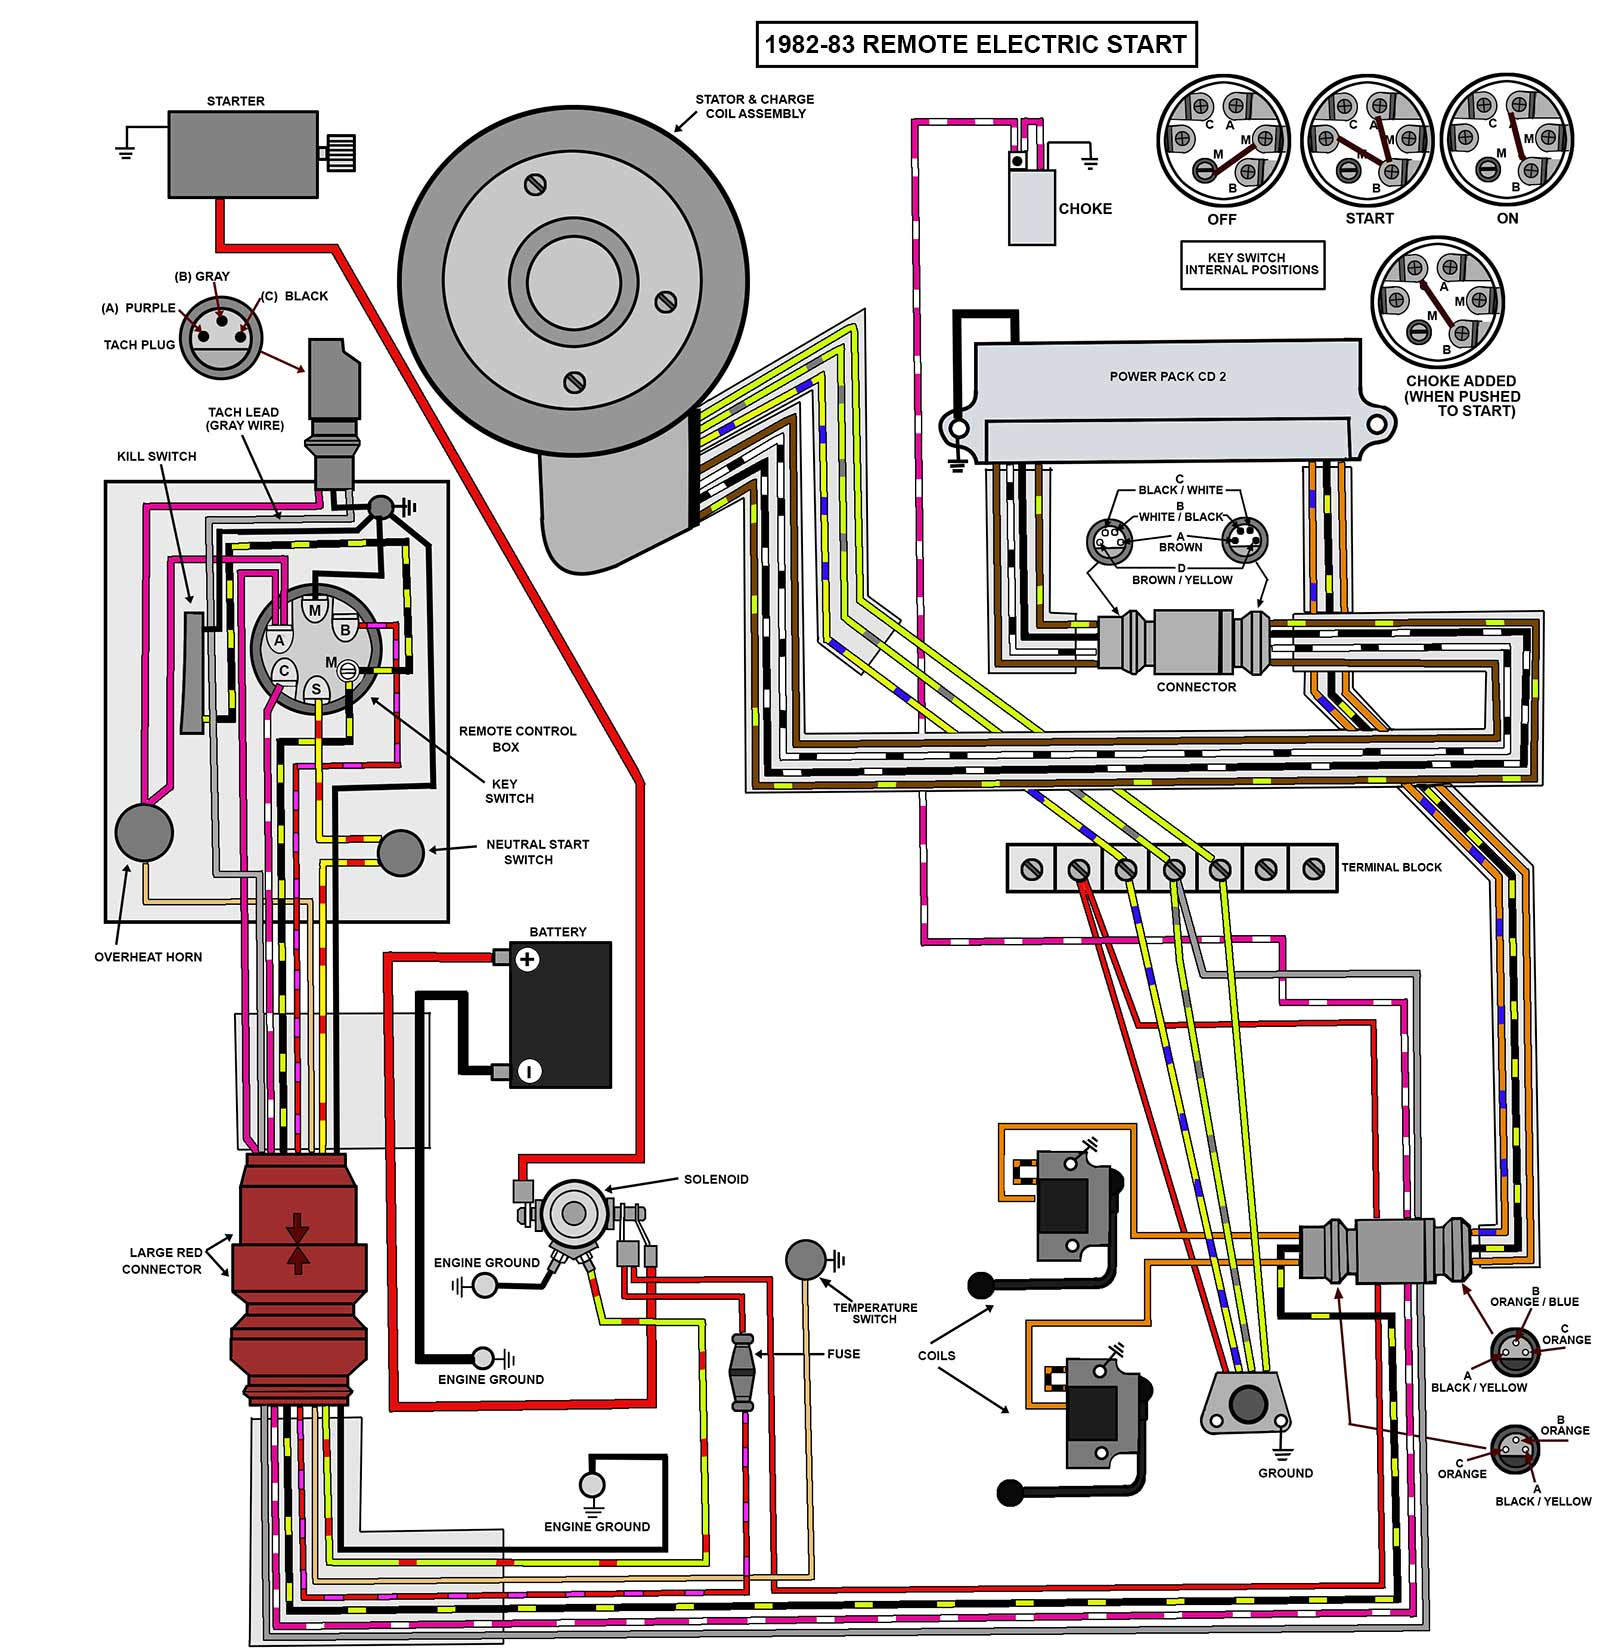 mastertech marine evinrude johnson outboard wiring diagrams rh maxrules com Evinrude Power Trim Wiring Diagram 150 Johnson Outboard Control Wiring Diagram